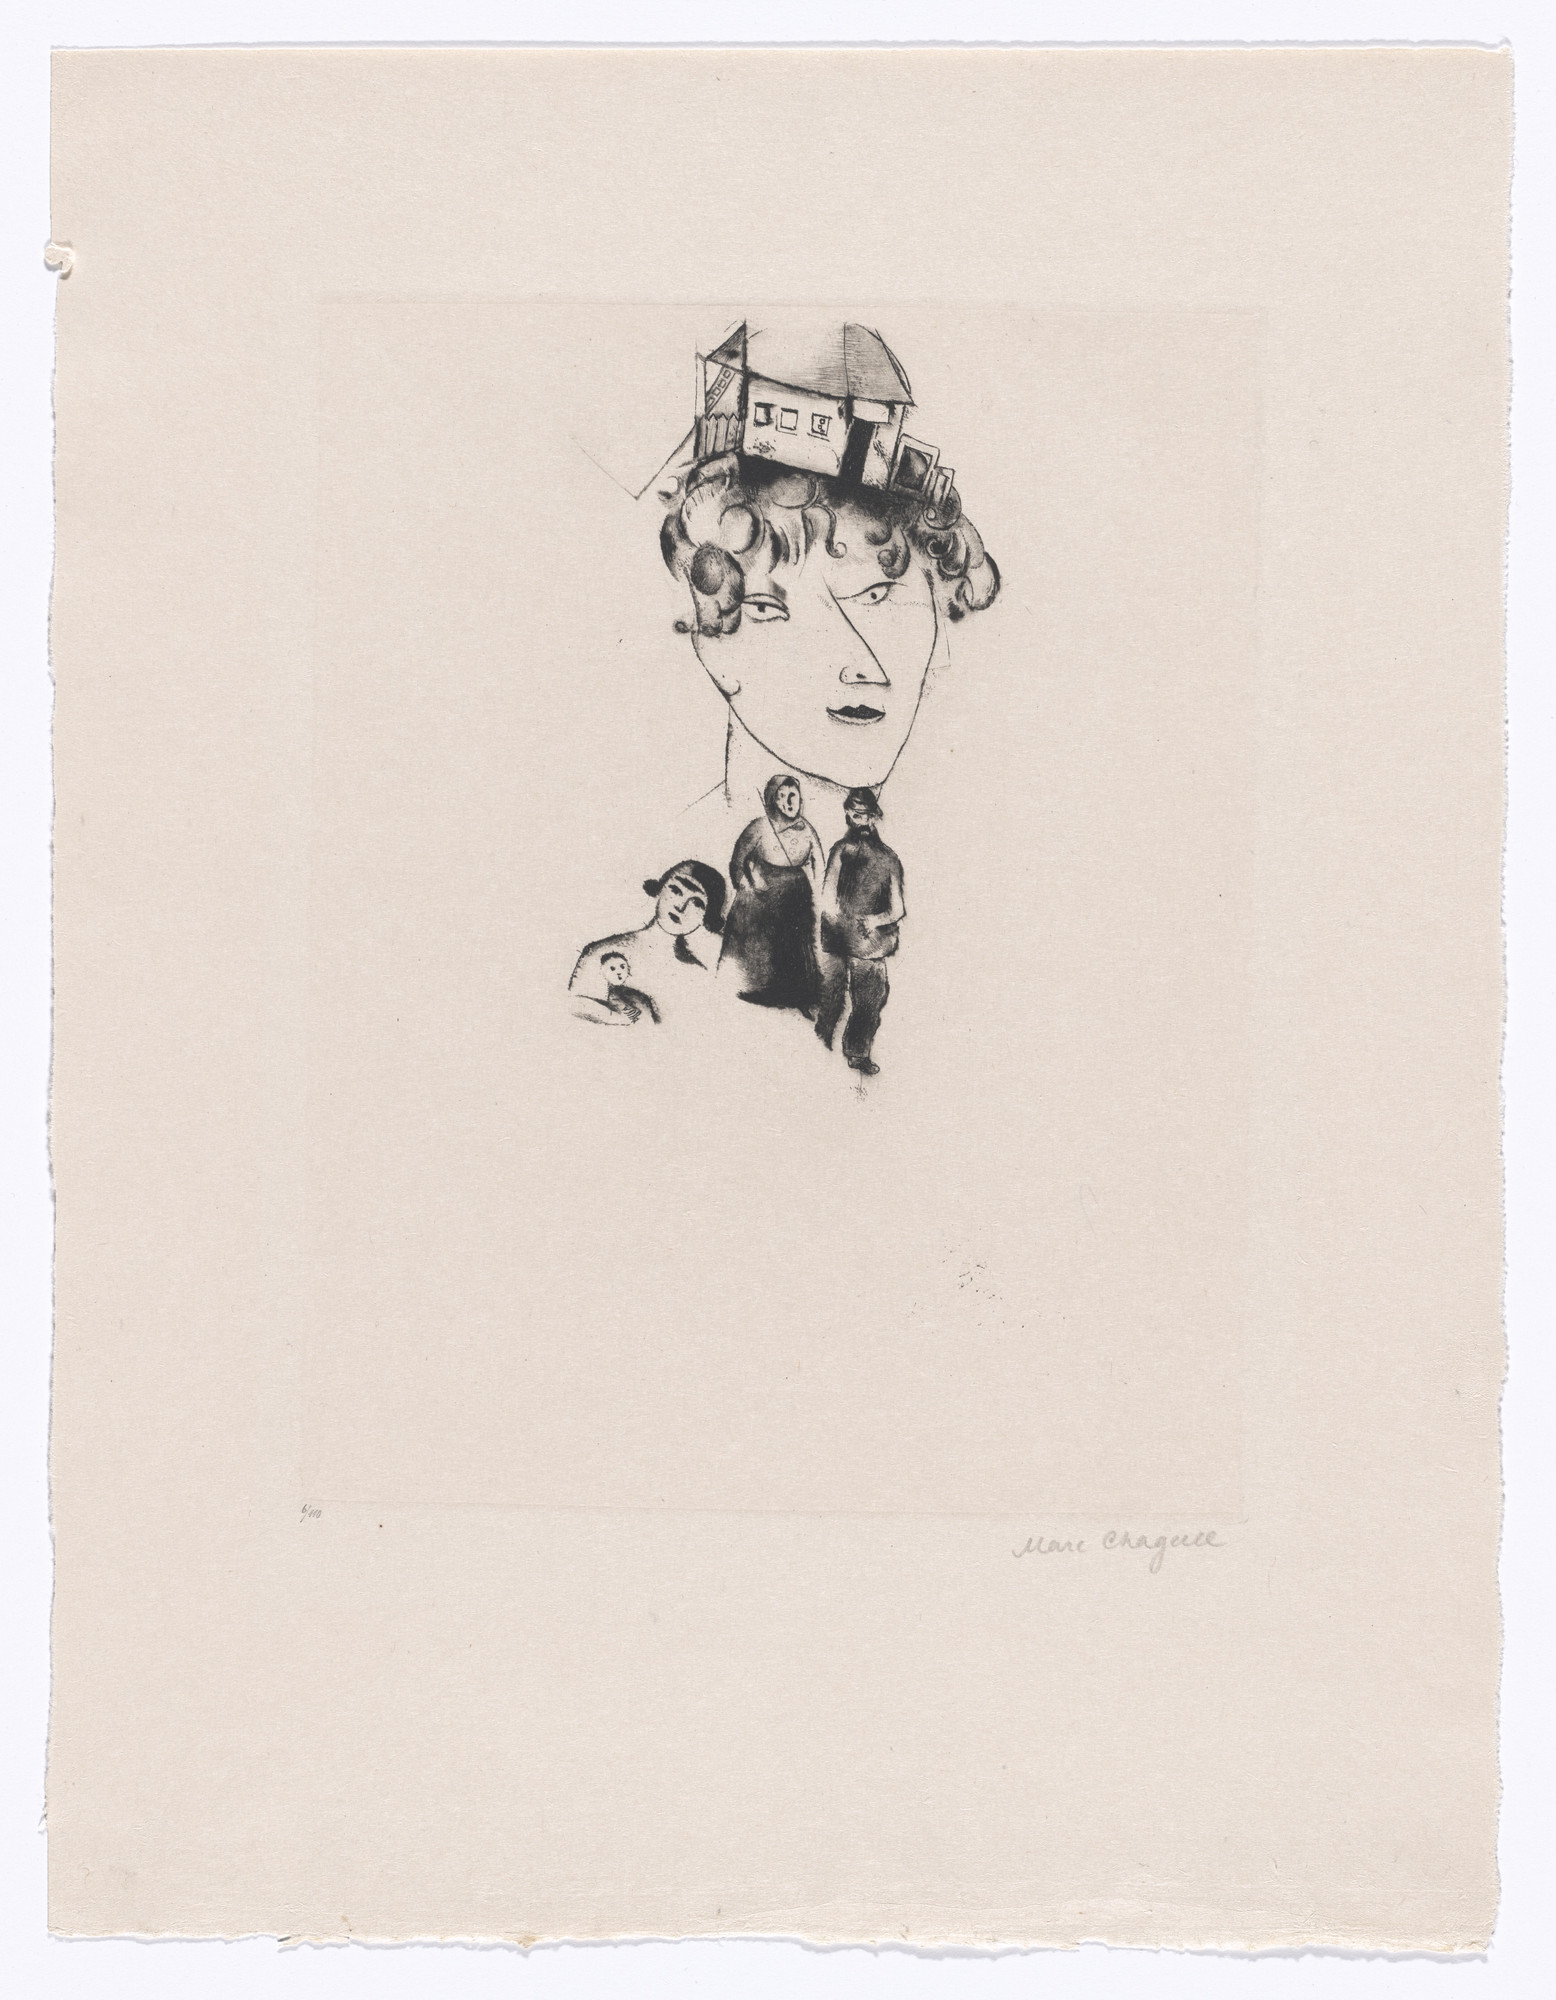 Marc Chagall. Self Portrait (Selbstportrait) from My Life (Mein Leben). 1922, published 1923